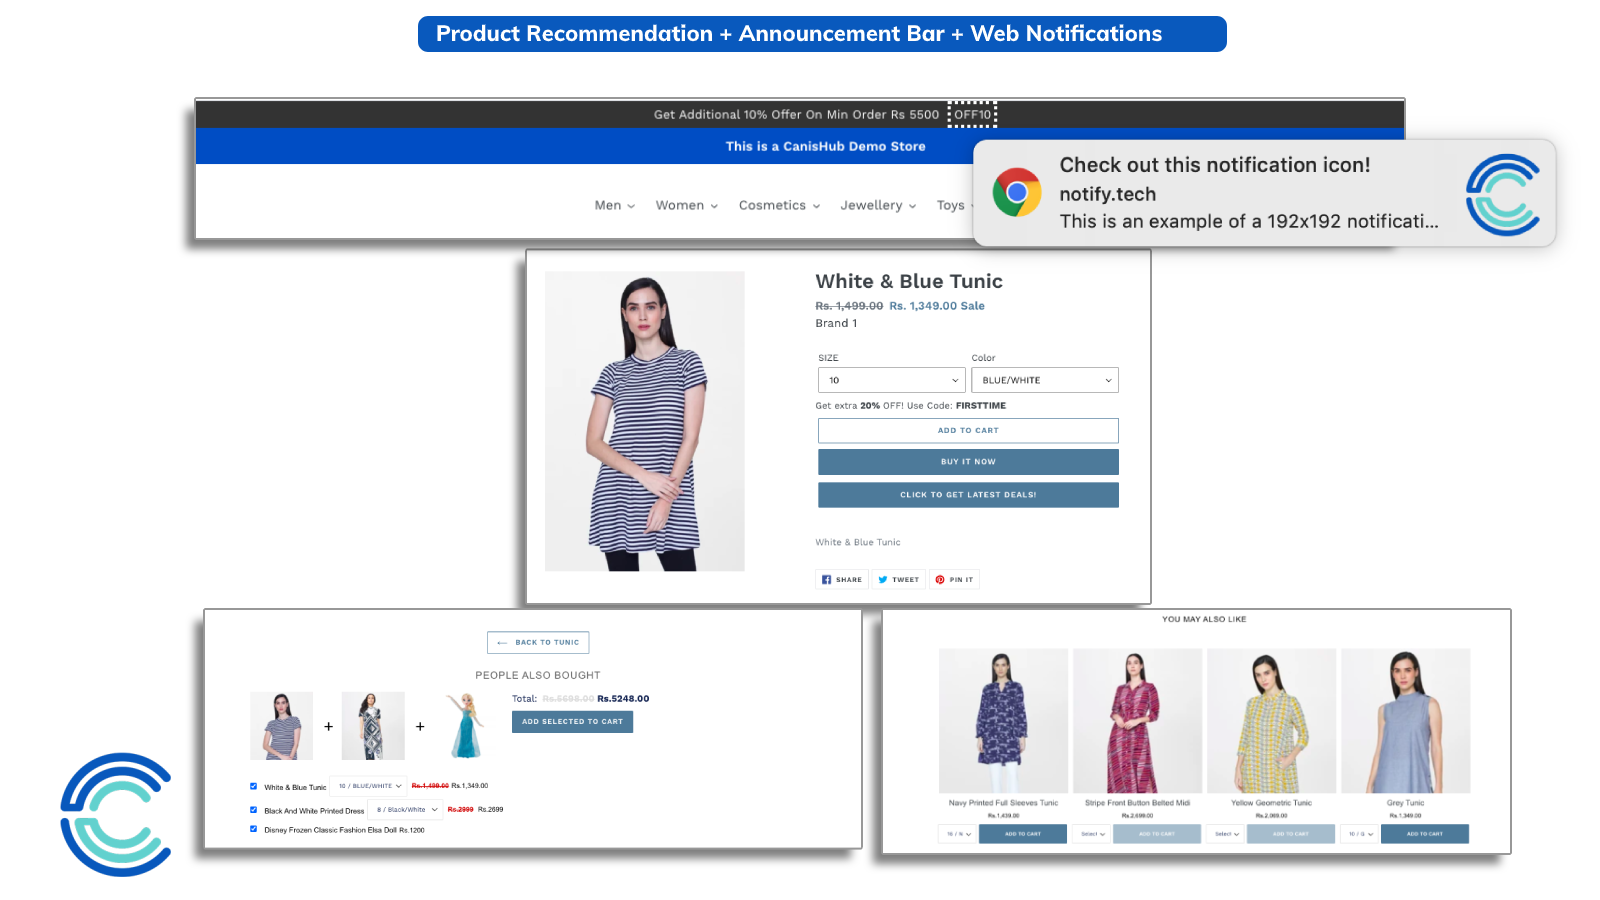 Product Recommendations + Announcements + Web Push Notifications